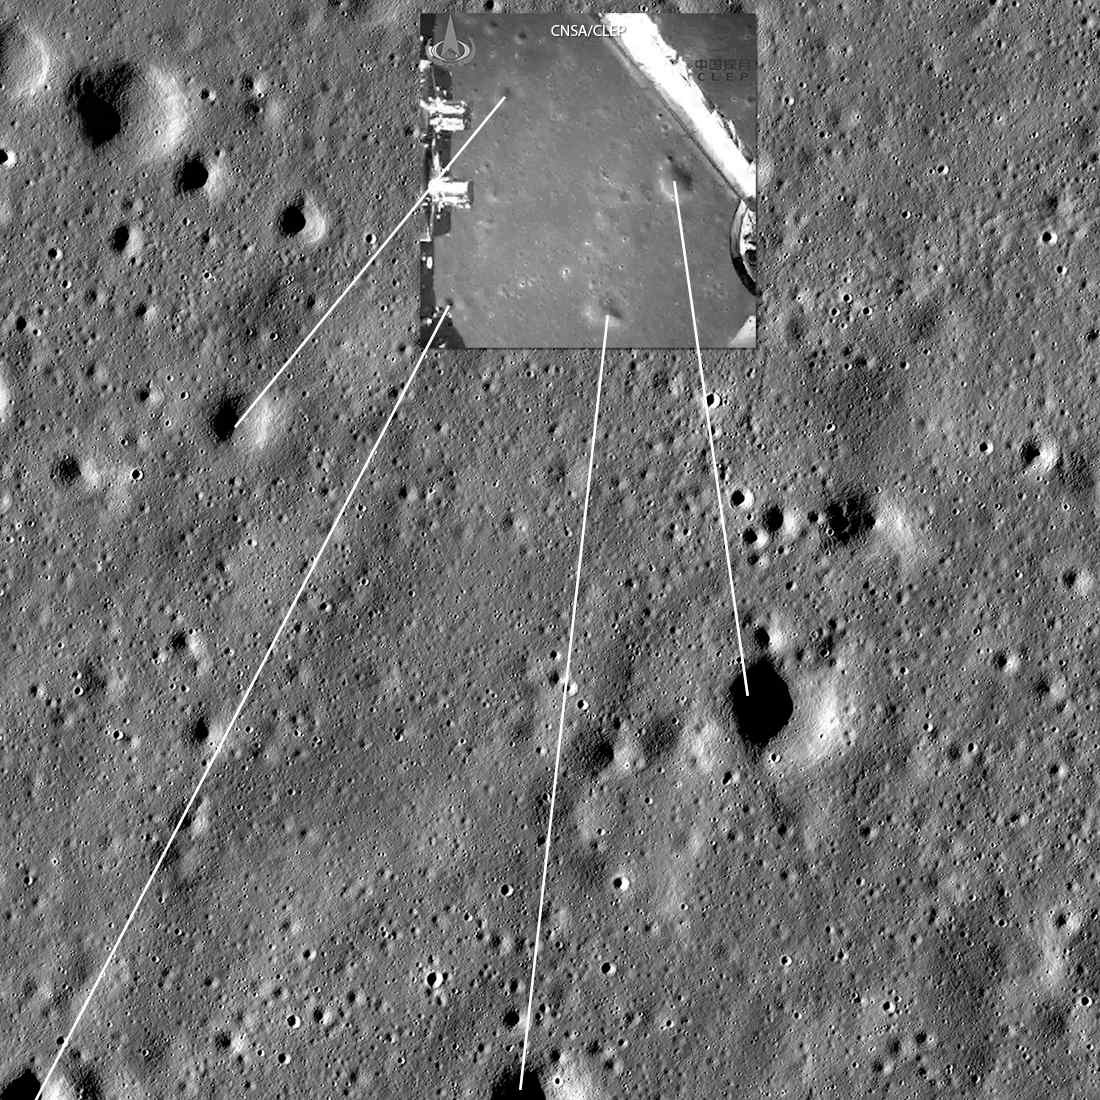 Mapping identifiable craters between an image captured during Chang'e 4's descent (small upper image; CNSA/CLEP) and an image from the NASA Lunar Reconnaissance Orbiter. Image width 2700 meters. LRO LROC NAC M134022629LR. Credit: NASA/GSFC/Arizona State University